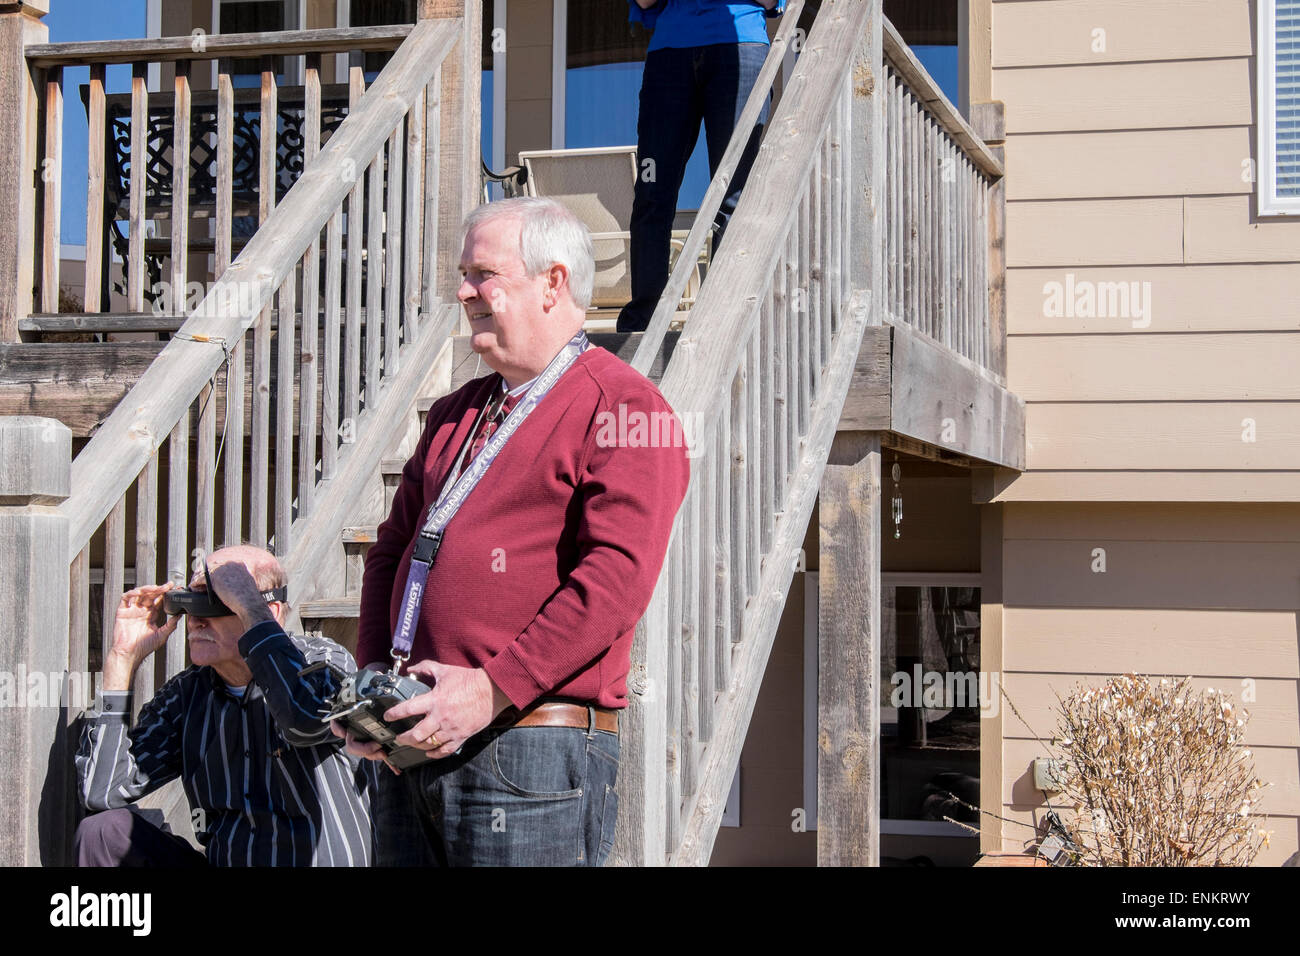 A man flies his quadcopter, while a senior man uses FatShark goggles to visualize the flight. Wichita, Kansas, USA. - Stock Image